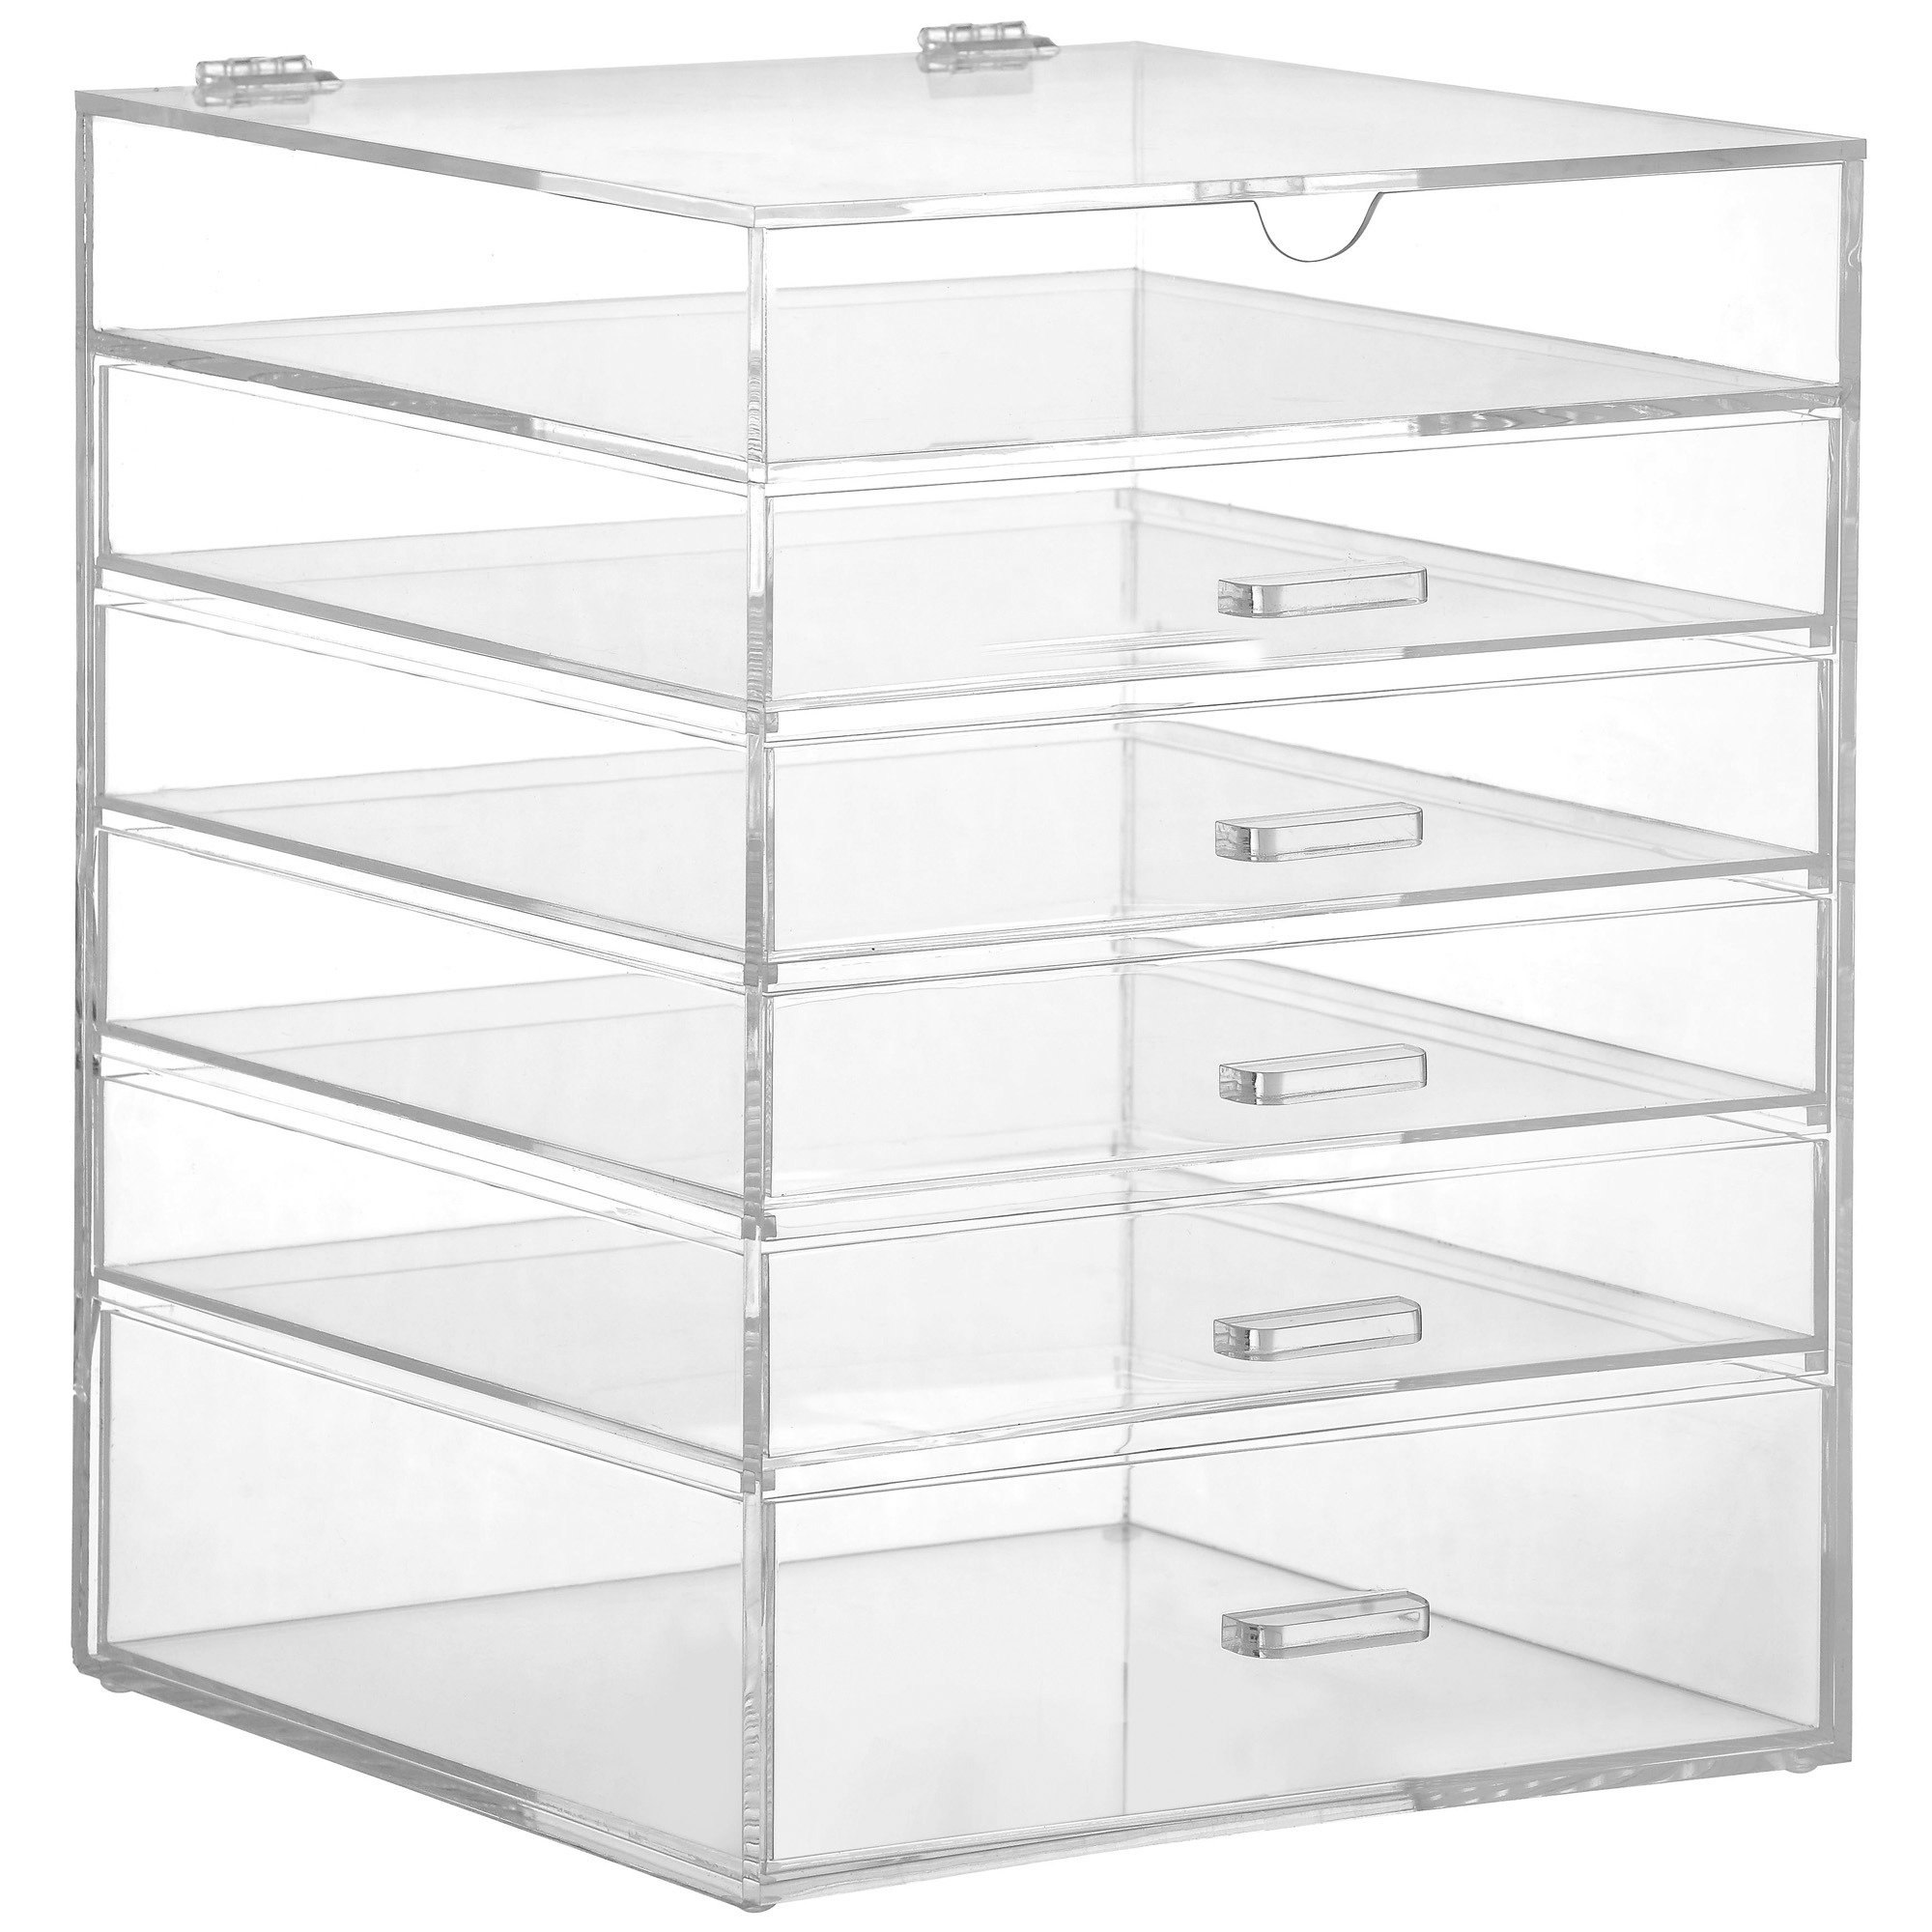 Sentinel Beautify Large 6 Tier Clear Acrylic Cosmetic Makeup Cube Organizer